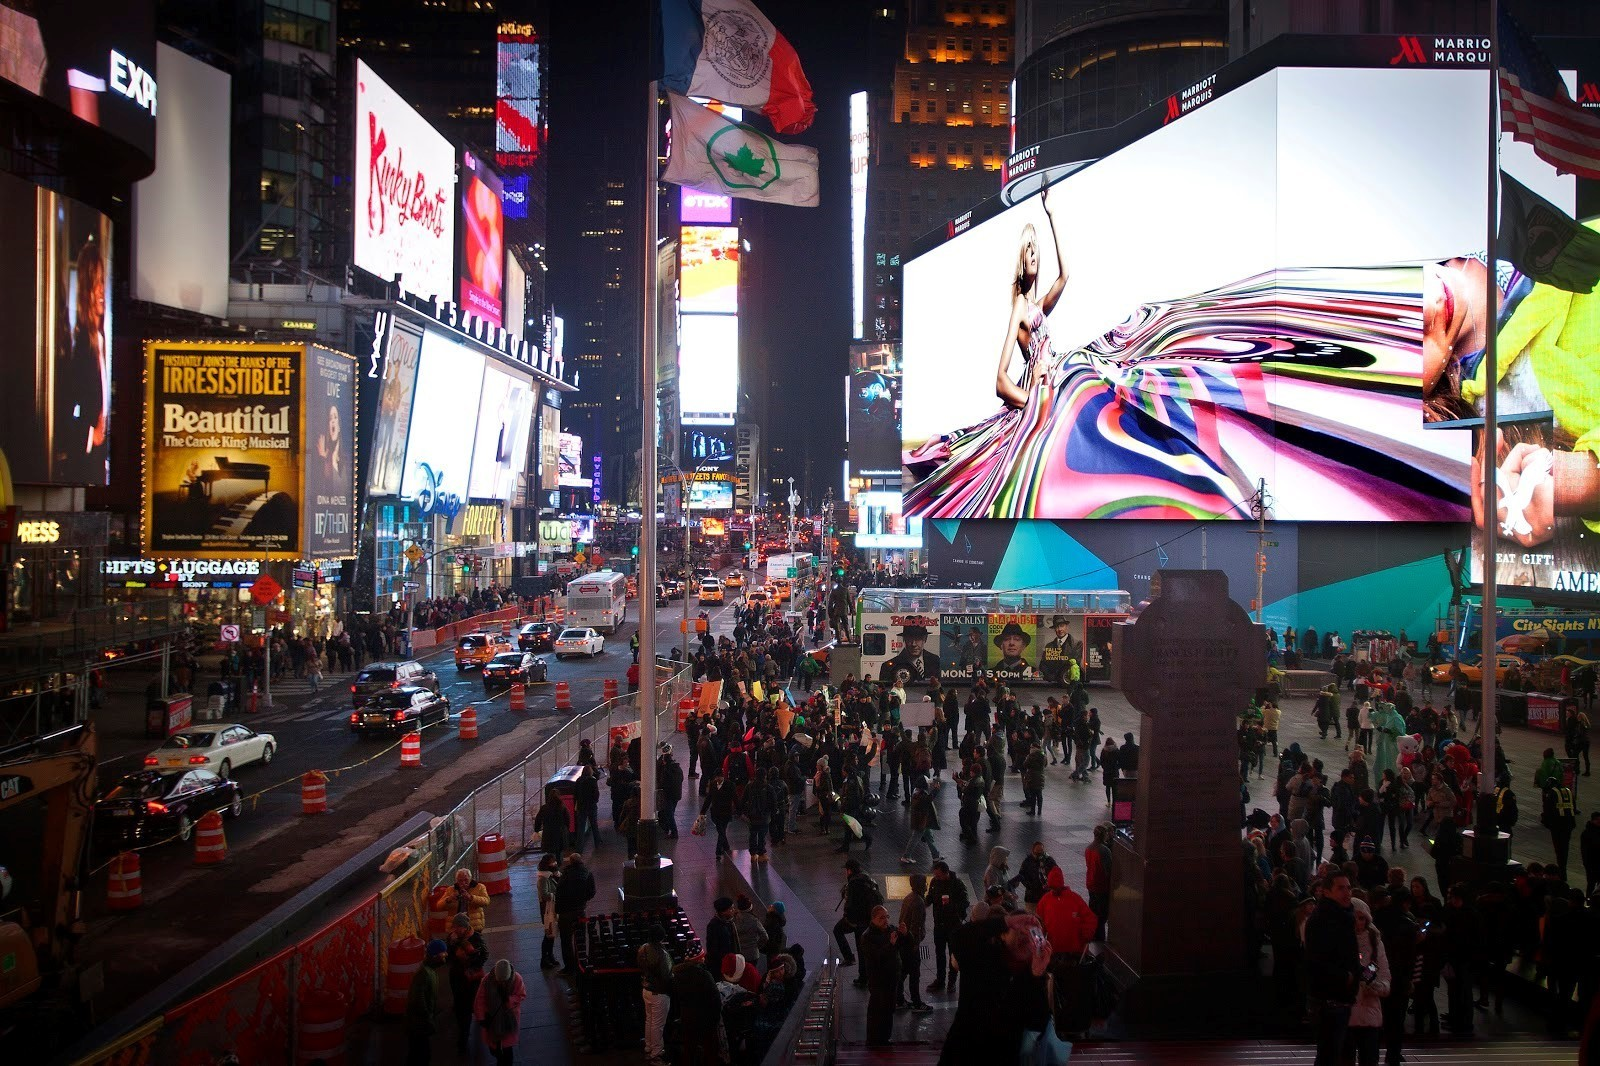 New York tops the table as the world's most innovative city.